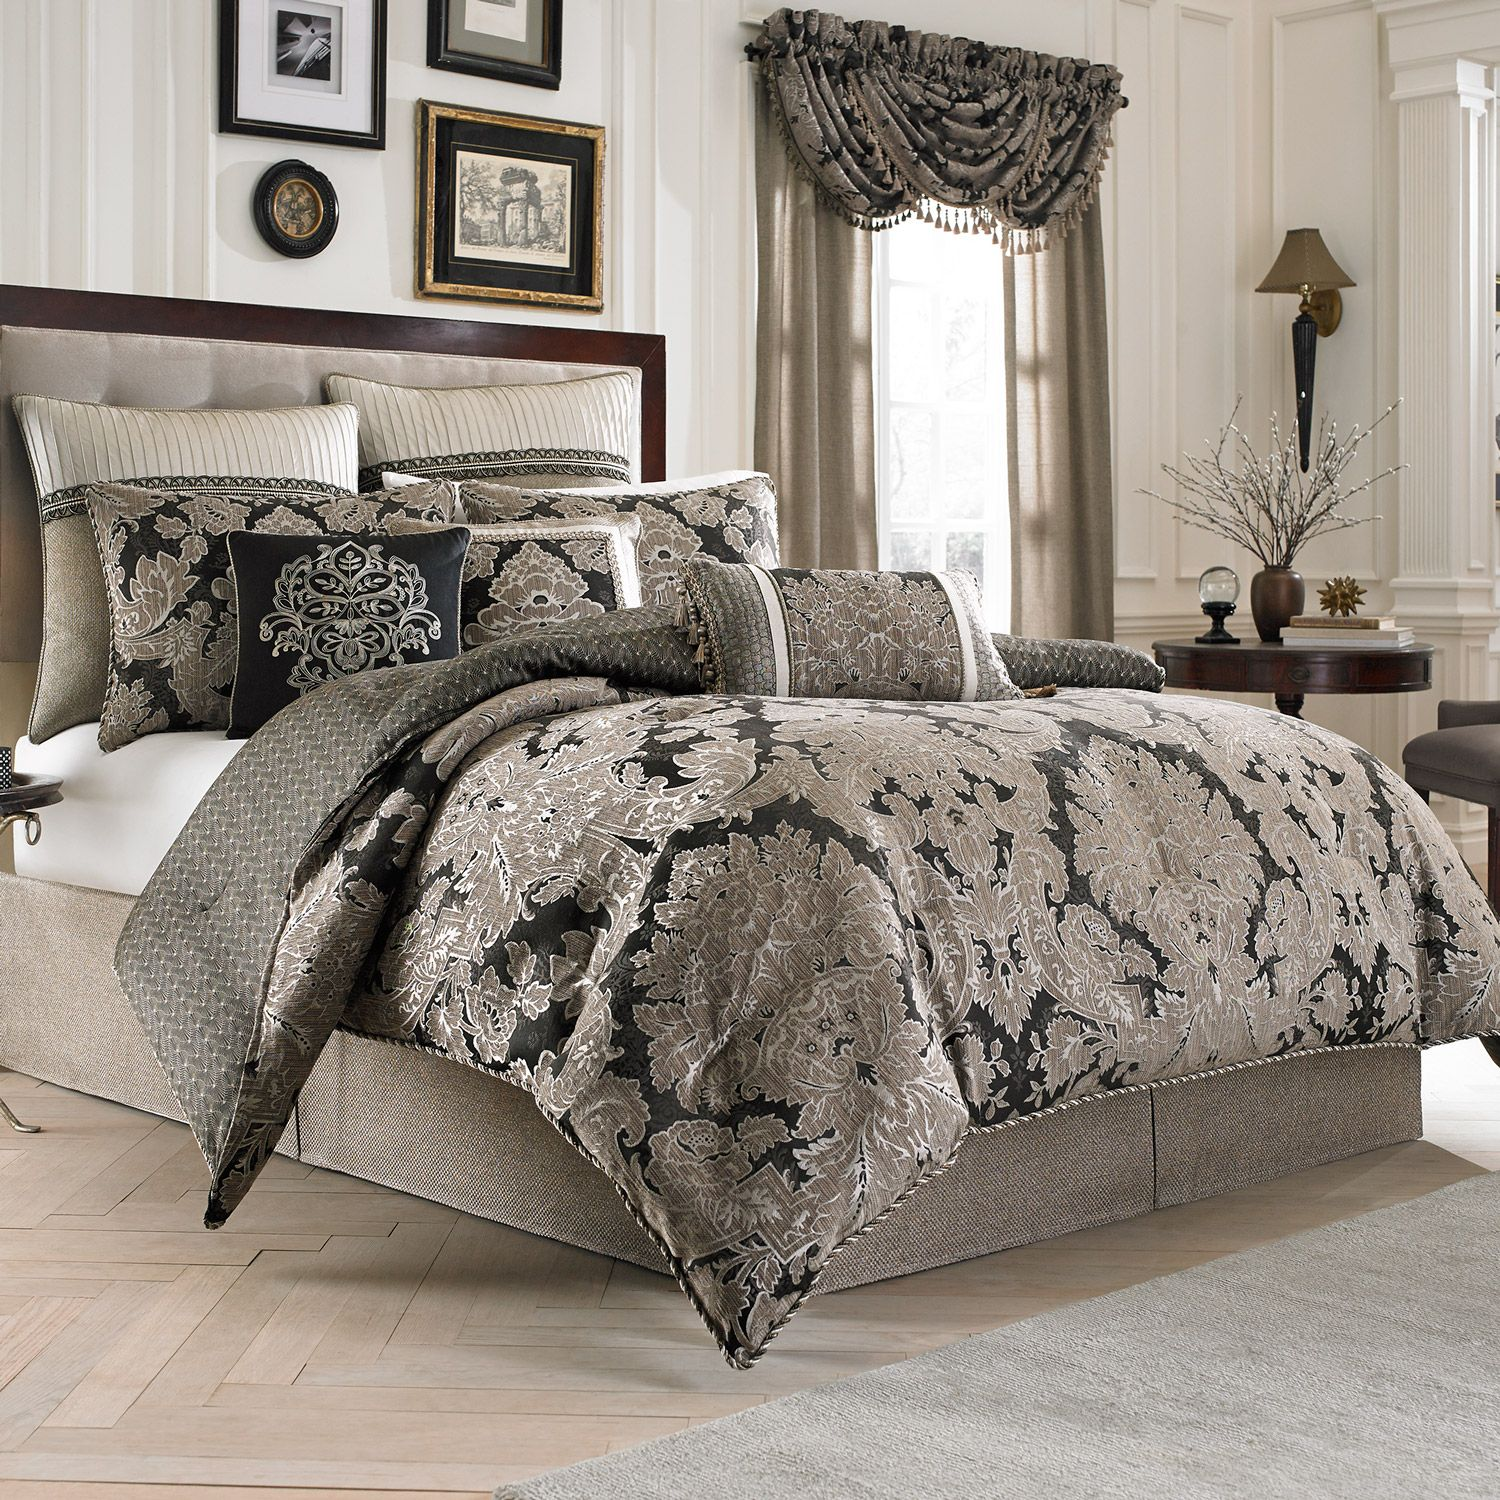 Comfy queen size comforter sets for bedroom design with cheap queen size comforter sets